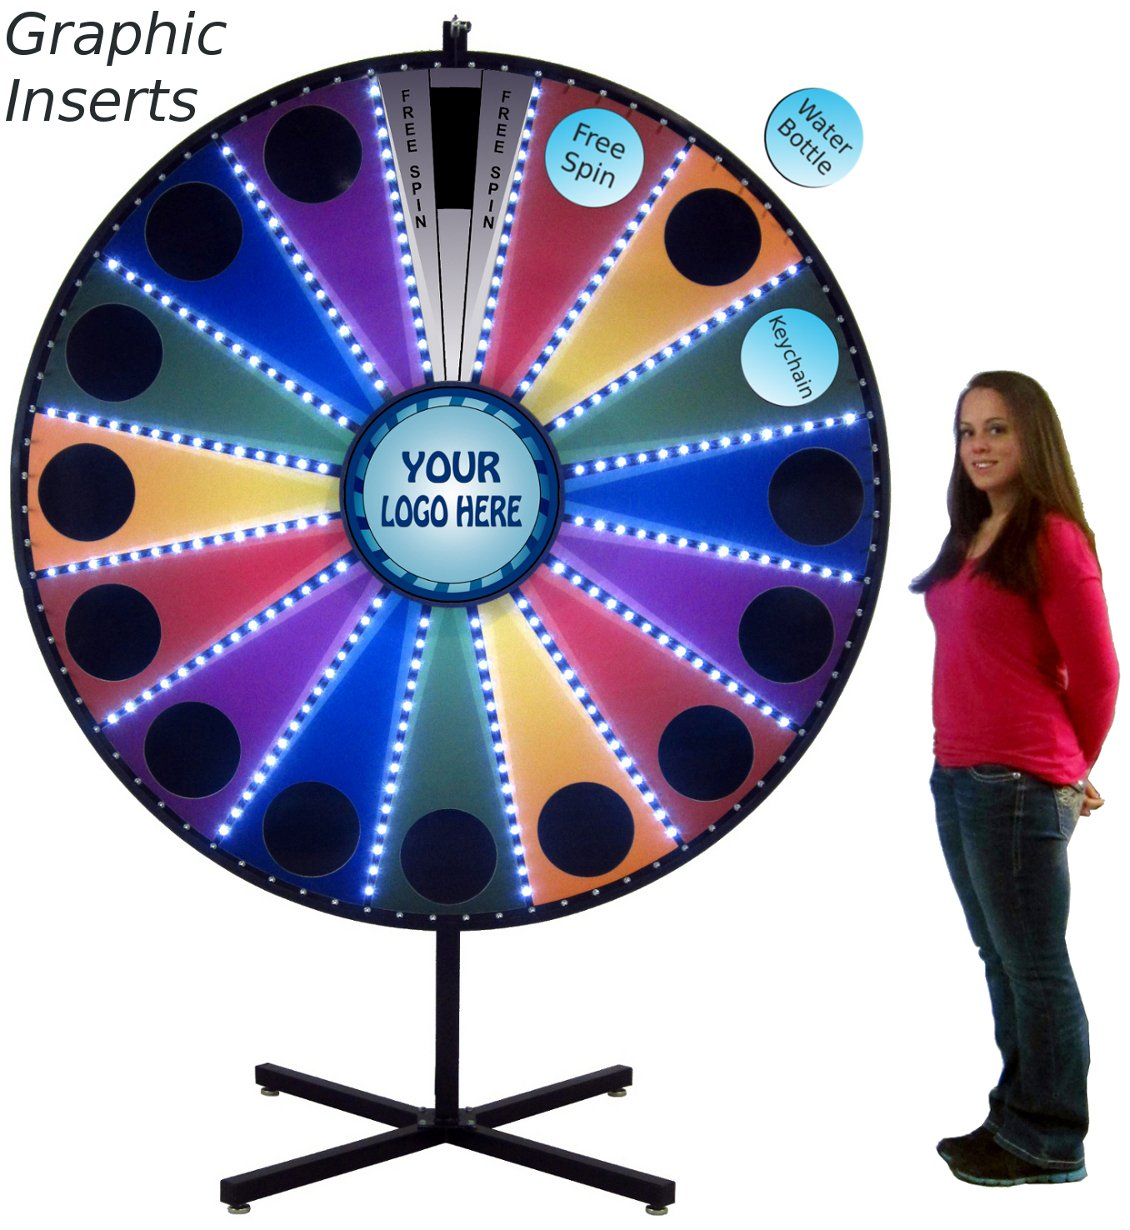 Amazon com: 72in LED Lighted Insert Your Own Graphics